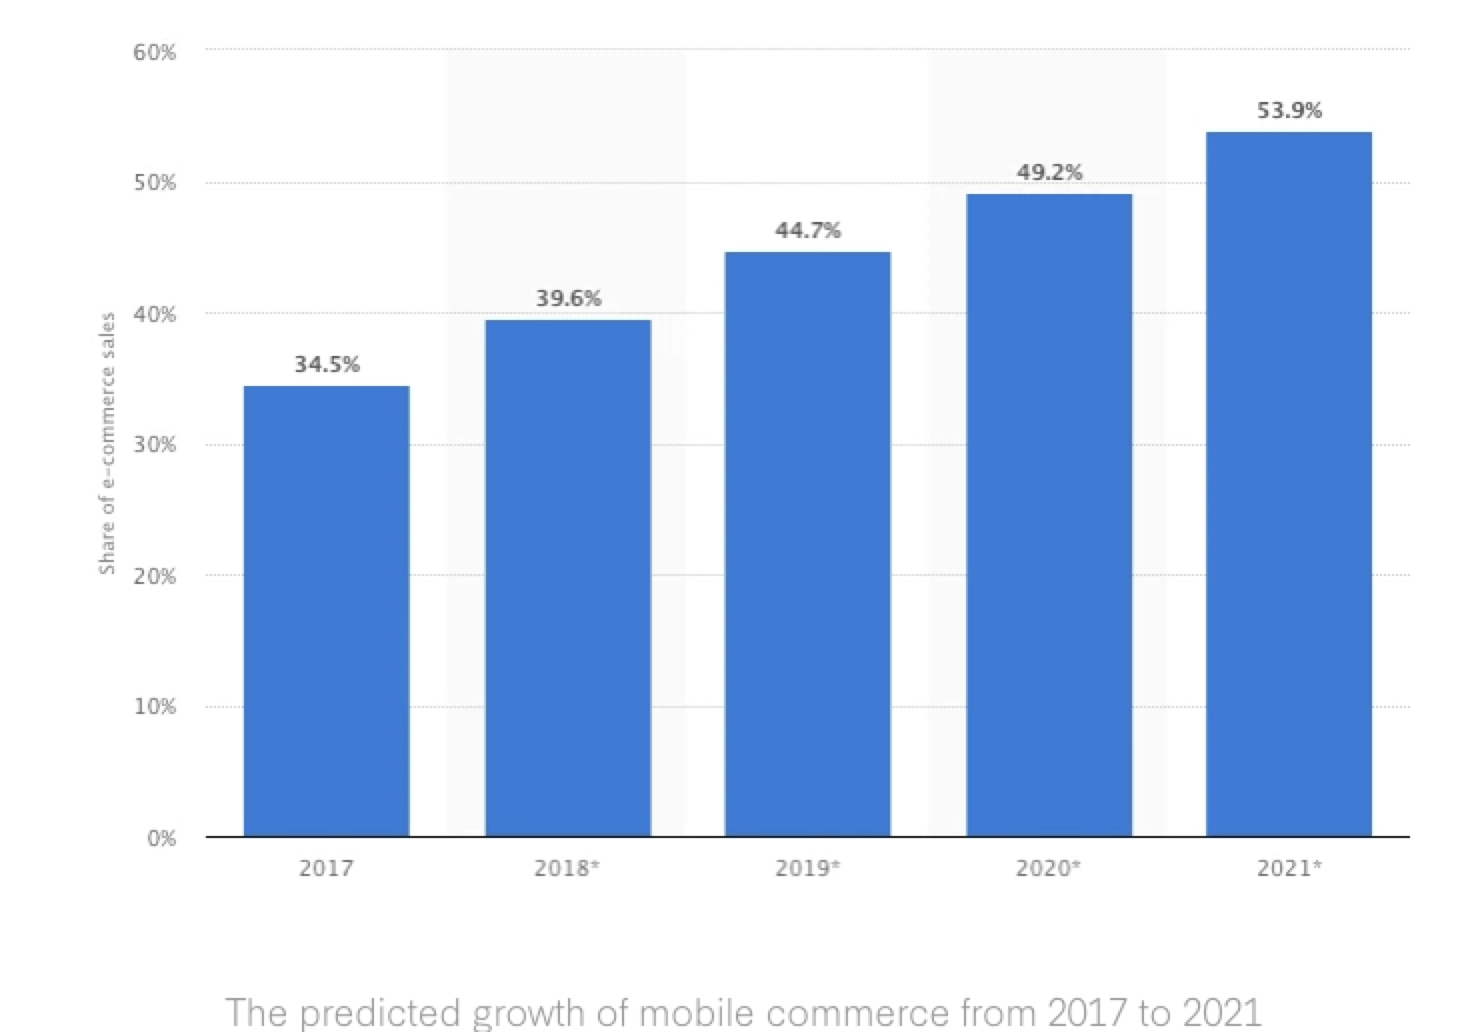 Bar graph depicting the growth of mobile commerce from 2017 to 2021